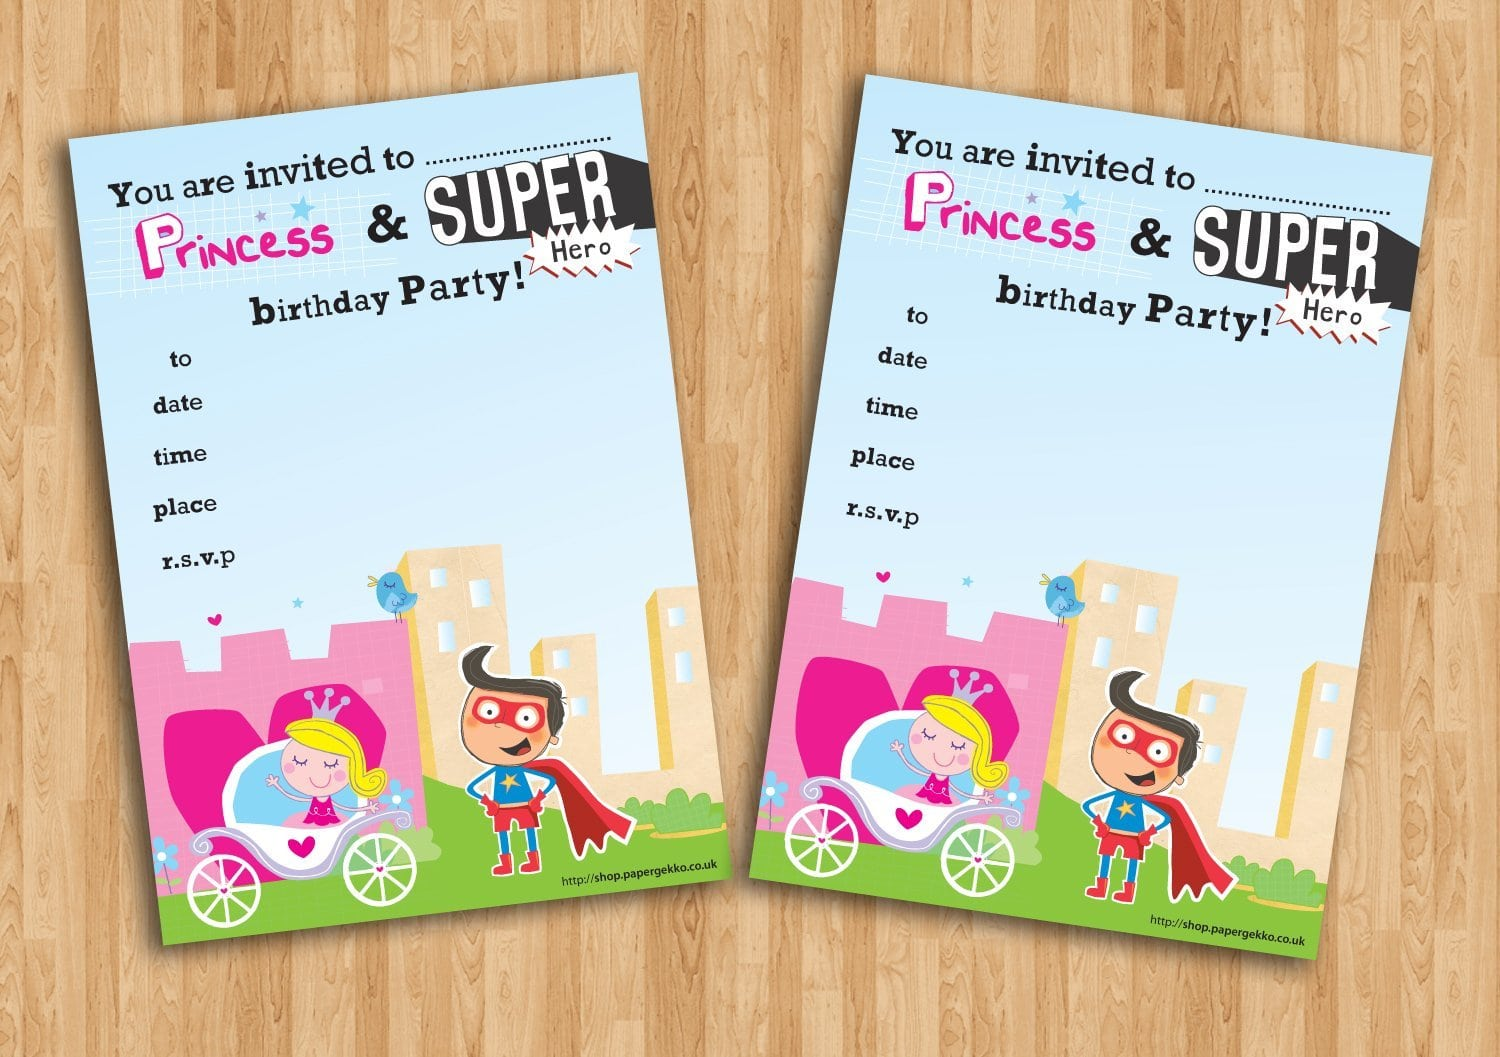 20 Children's Birthday Party Invitations Princess And Superhero